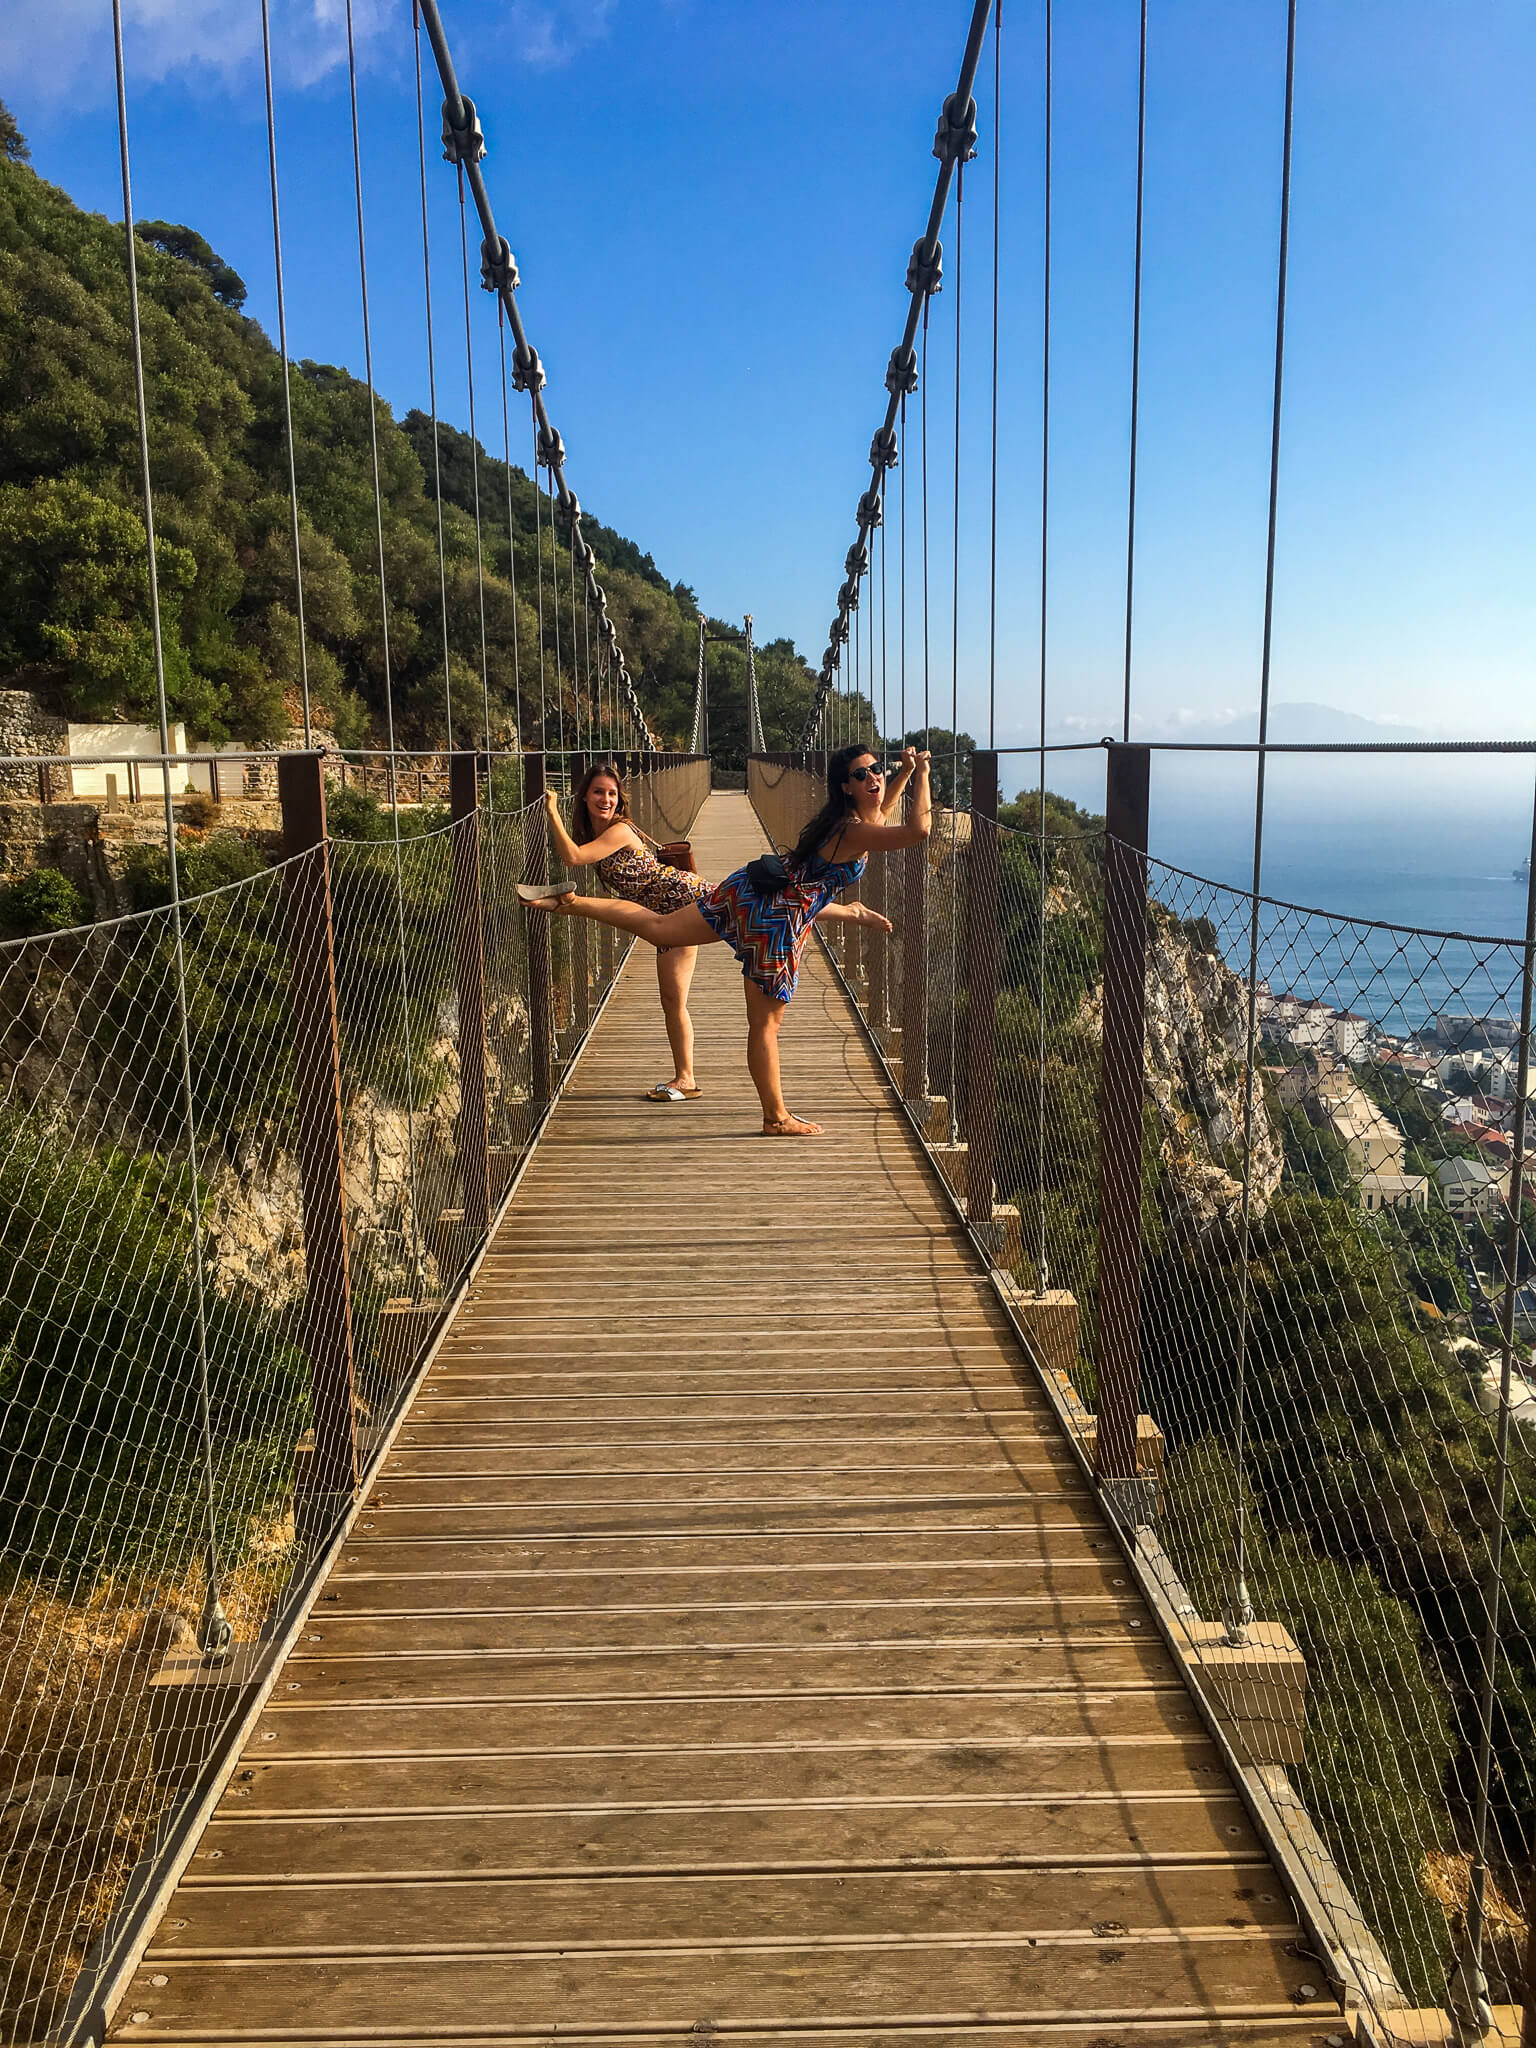 Hanging-bridge-Gibraltar